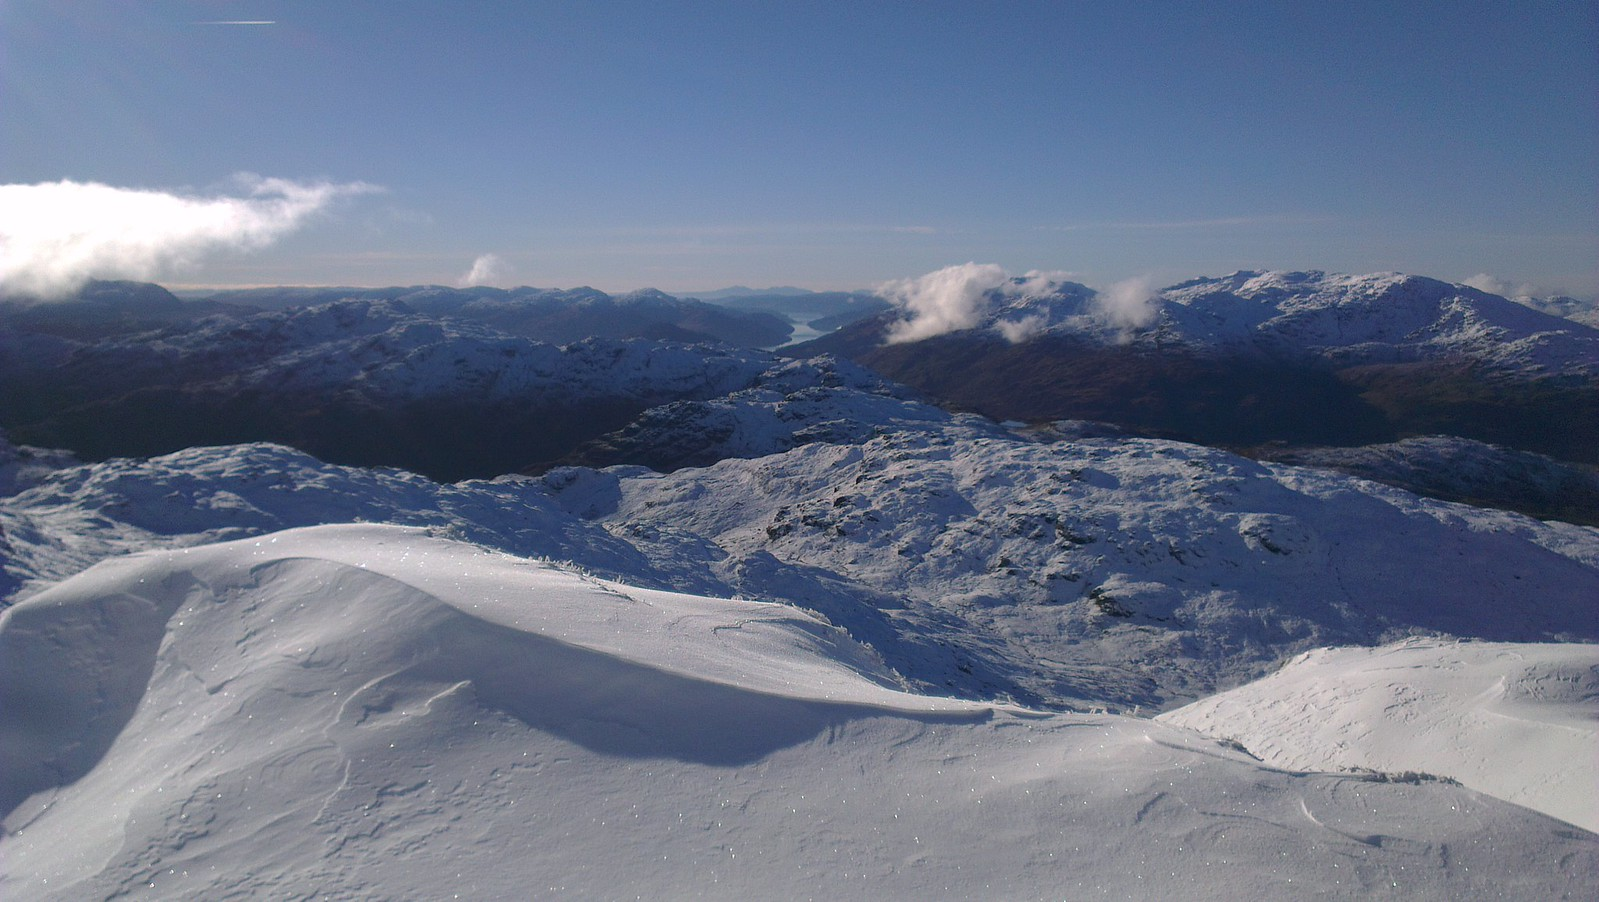 View from the ascent of Beinn Chabhair. I didn't take my camera, so had to rely on my phone.